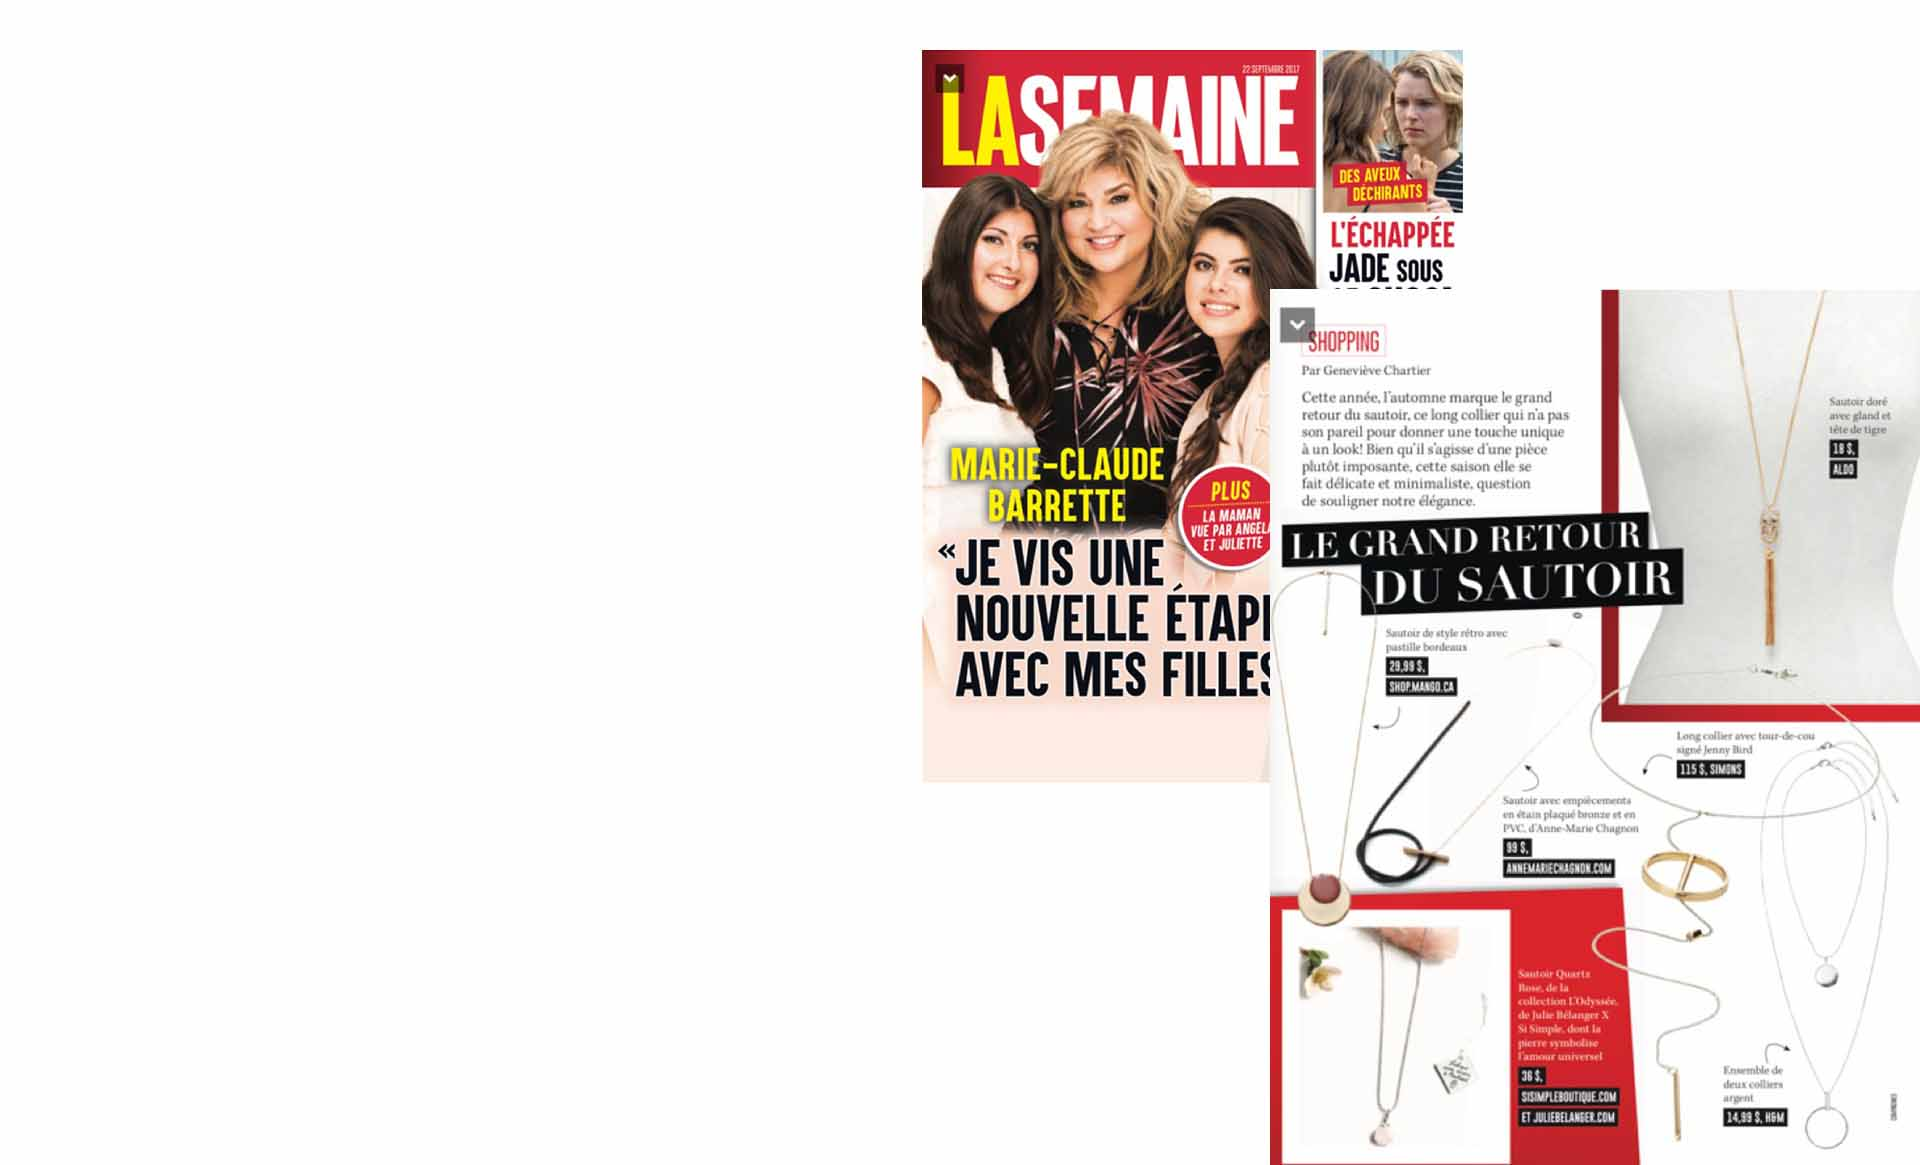 The long necklace in star in the La semaine magazine